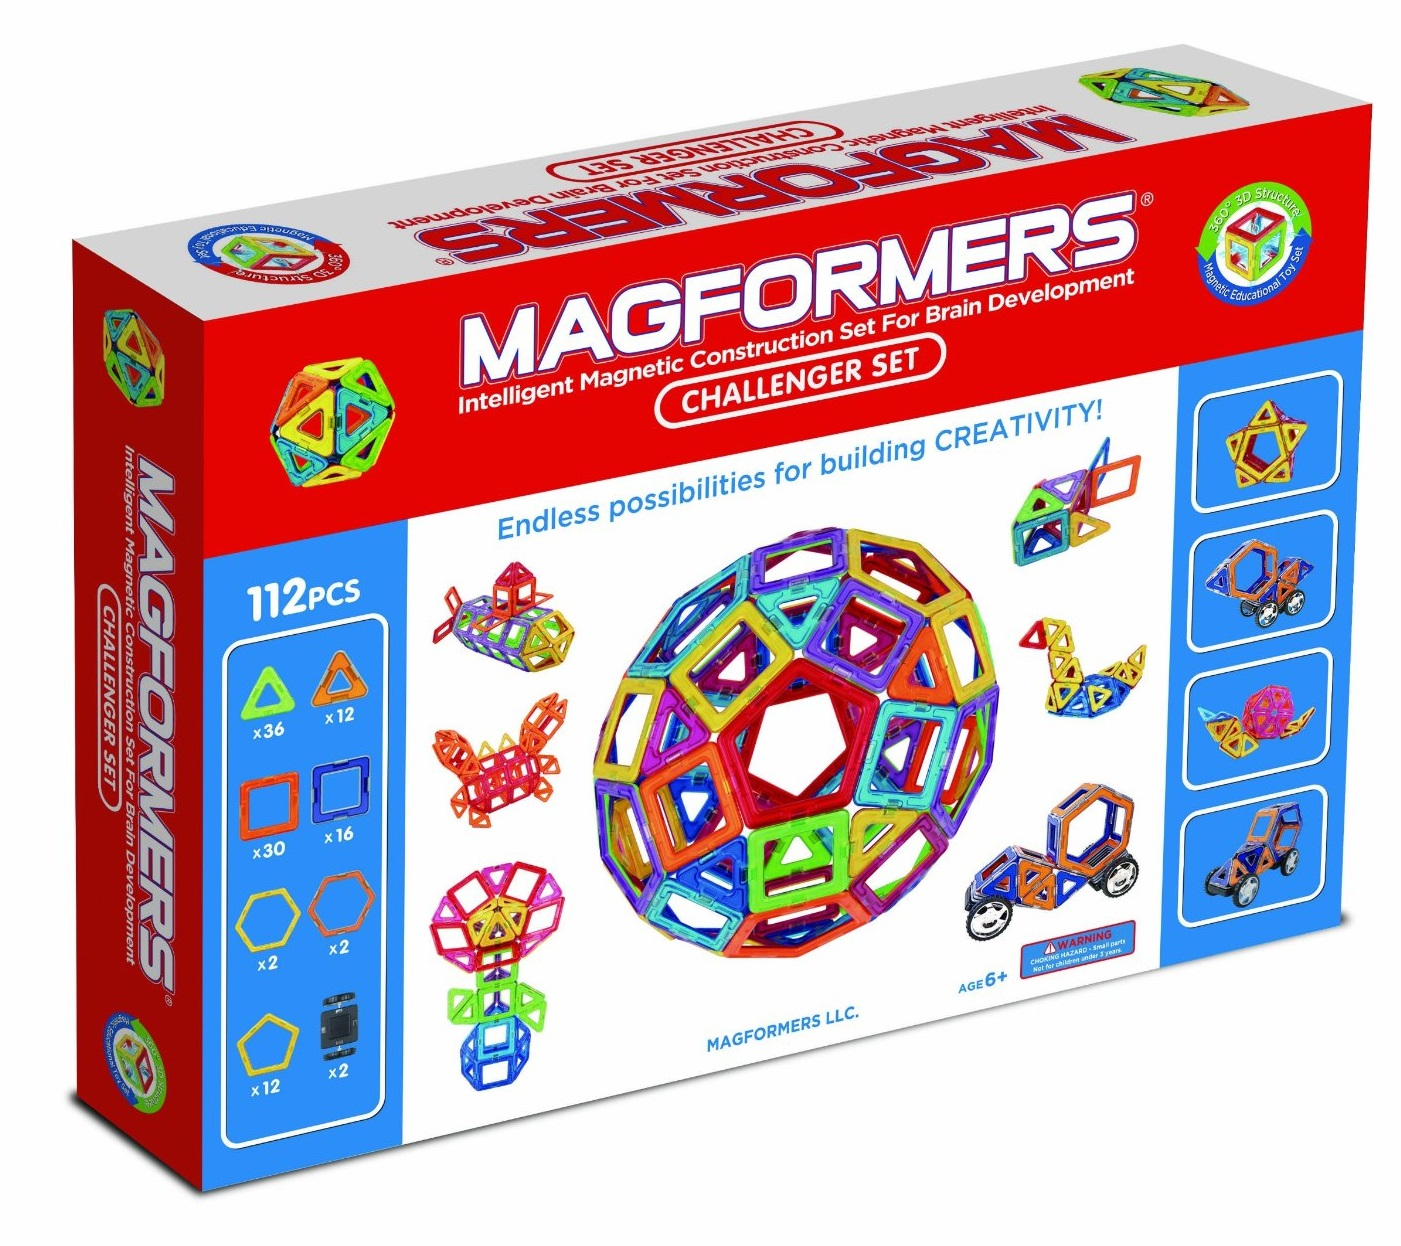 Magformers Magnetic Construction Sets Review And Giveaway